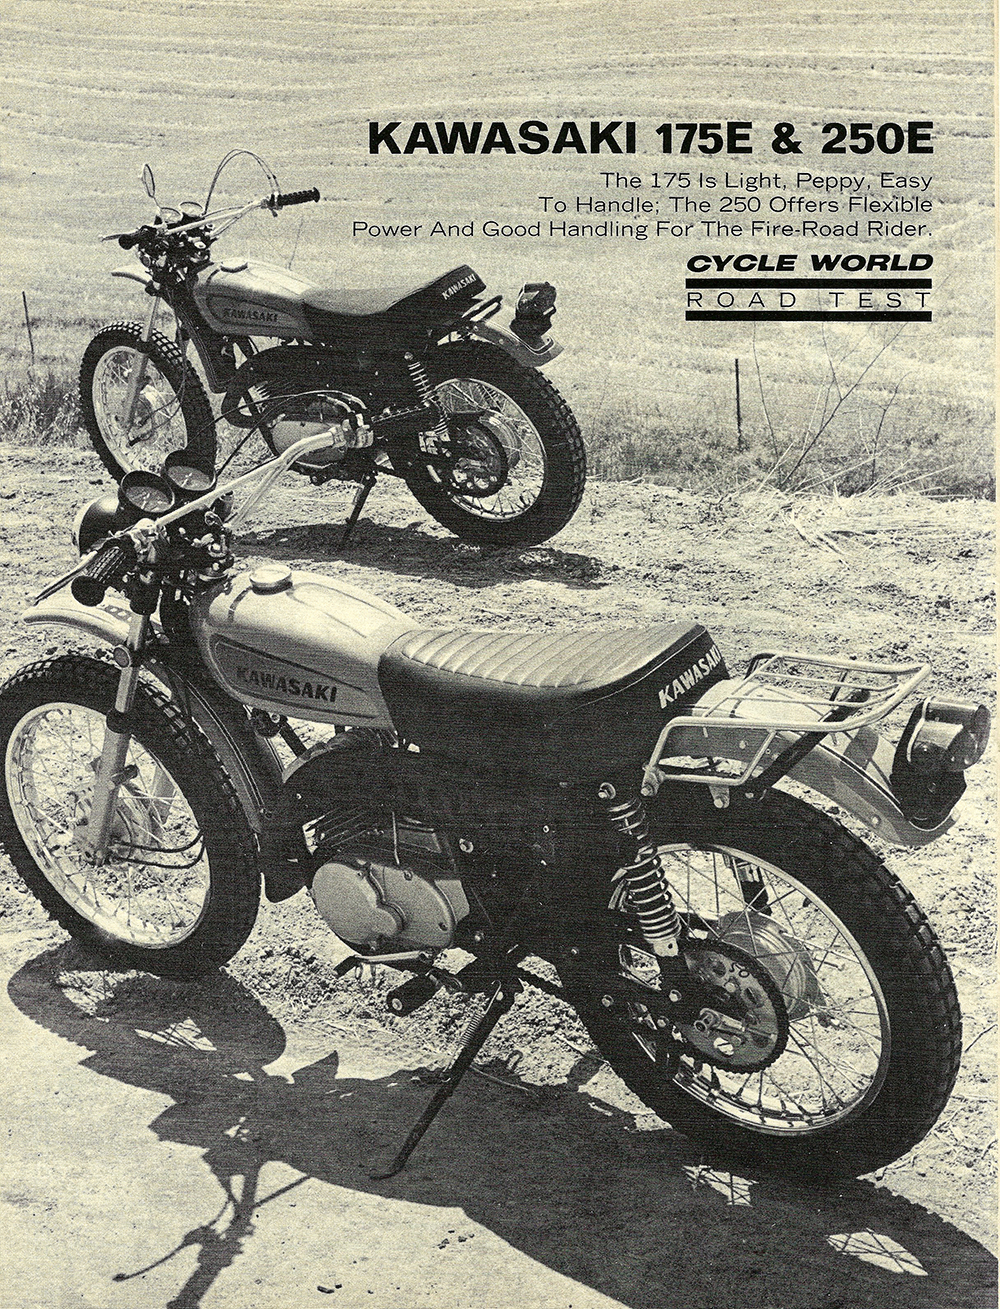 1970 Kawasaki 175E and 250E road test 01.jpg